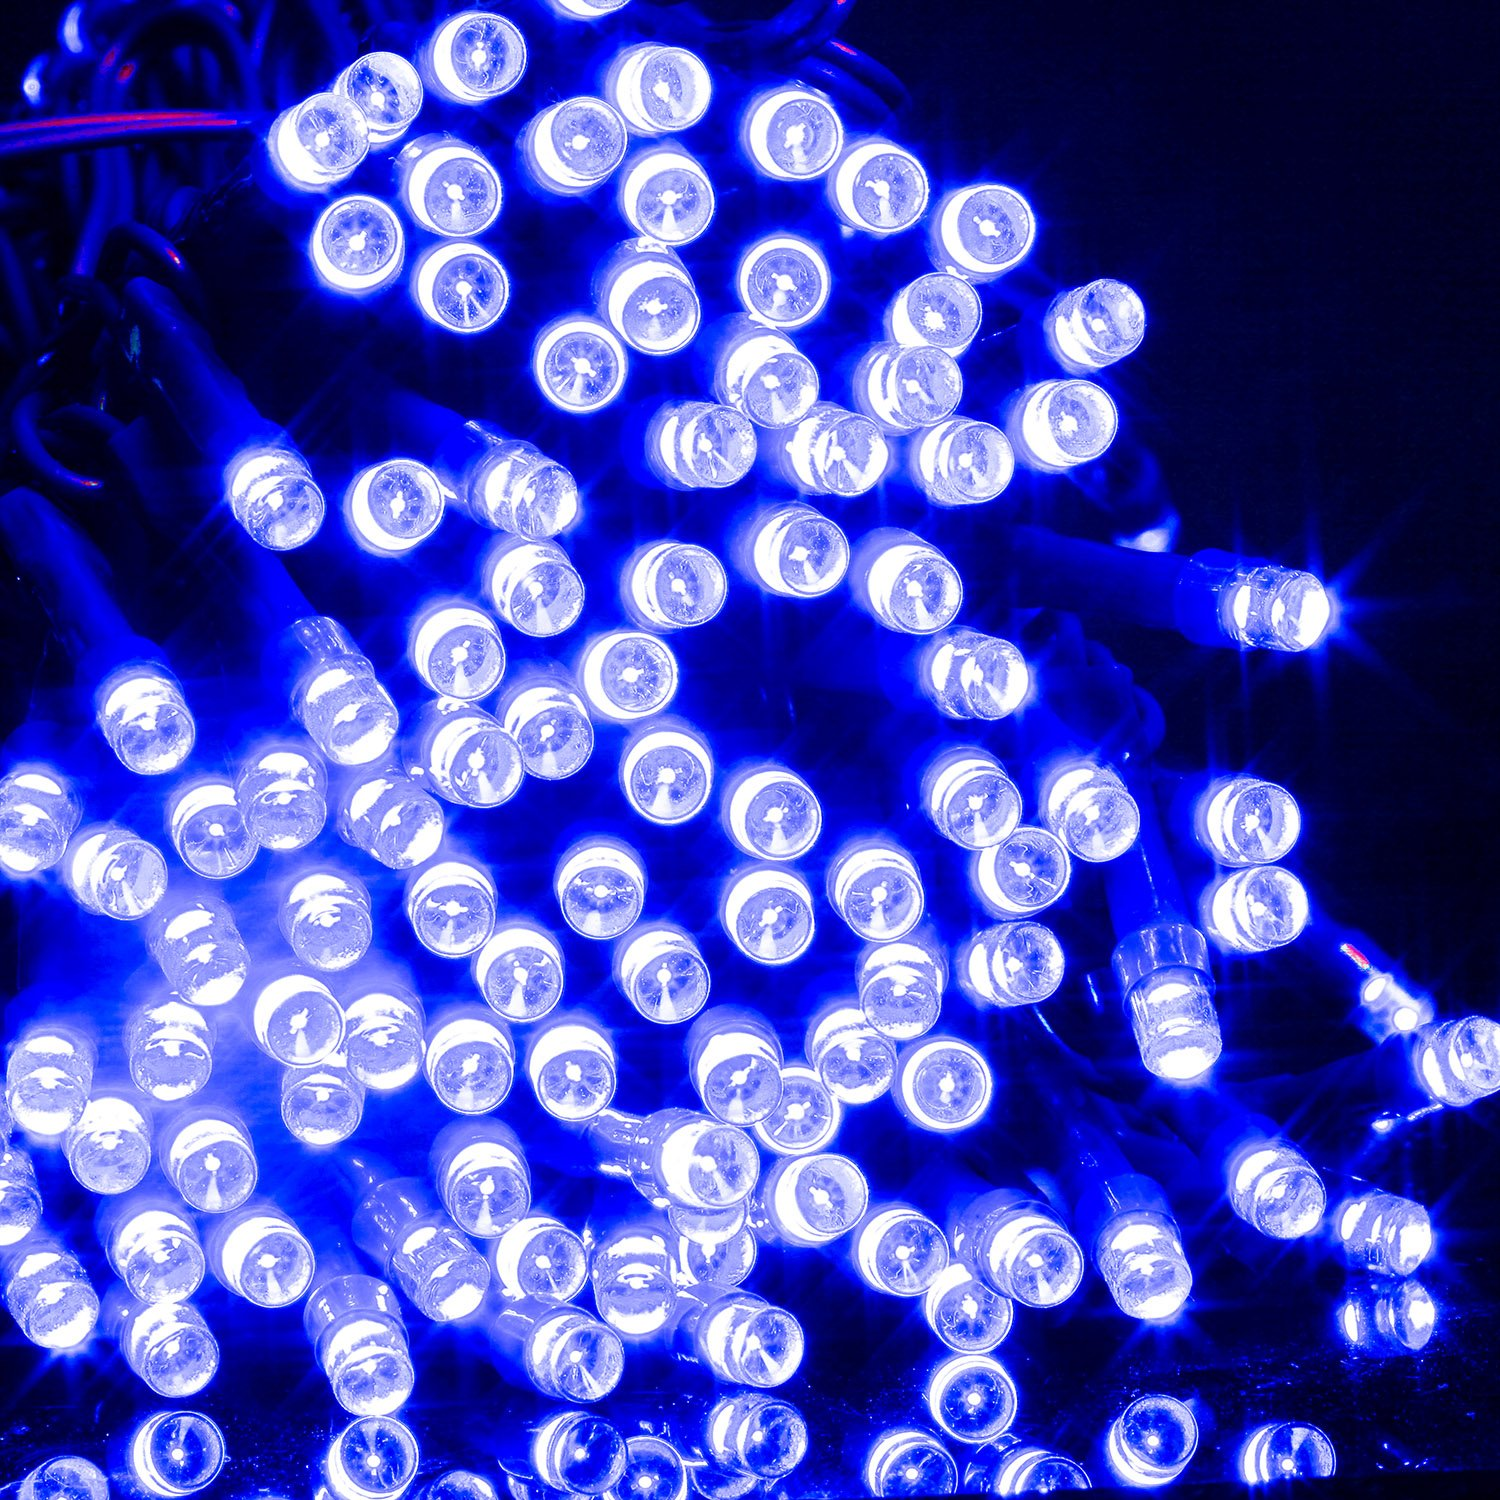 BlueFire 100 LED Fairy Decorative Garden String Lights 39ft DC Power String Christmas Party Lights Indoor Outdoor String Lights for Patio,Wedding,Party (Blue)